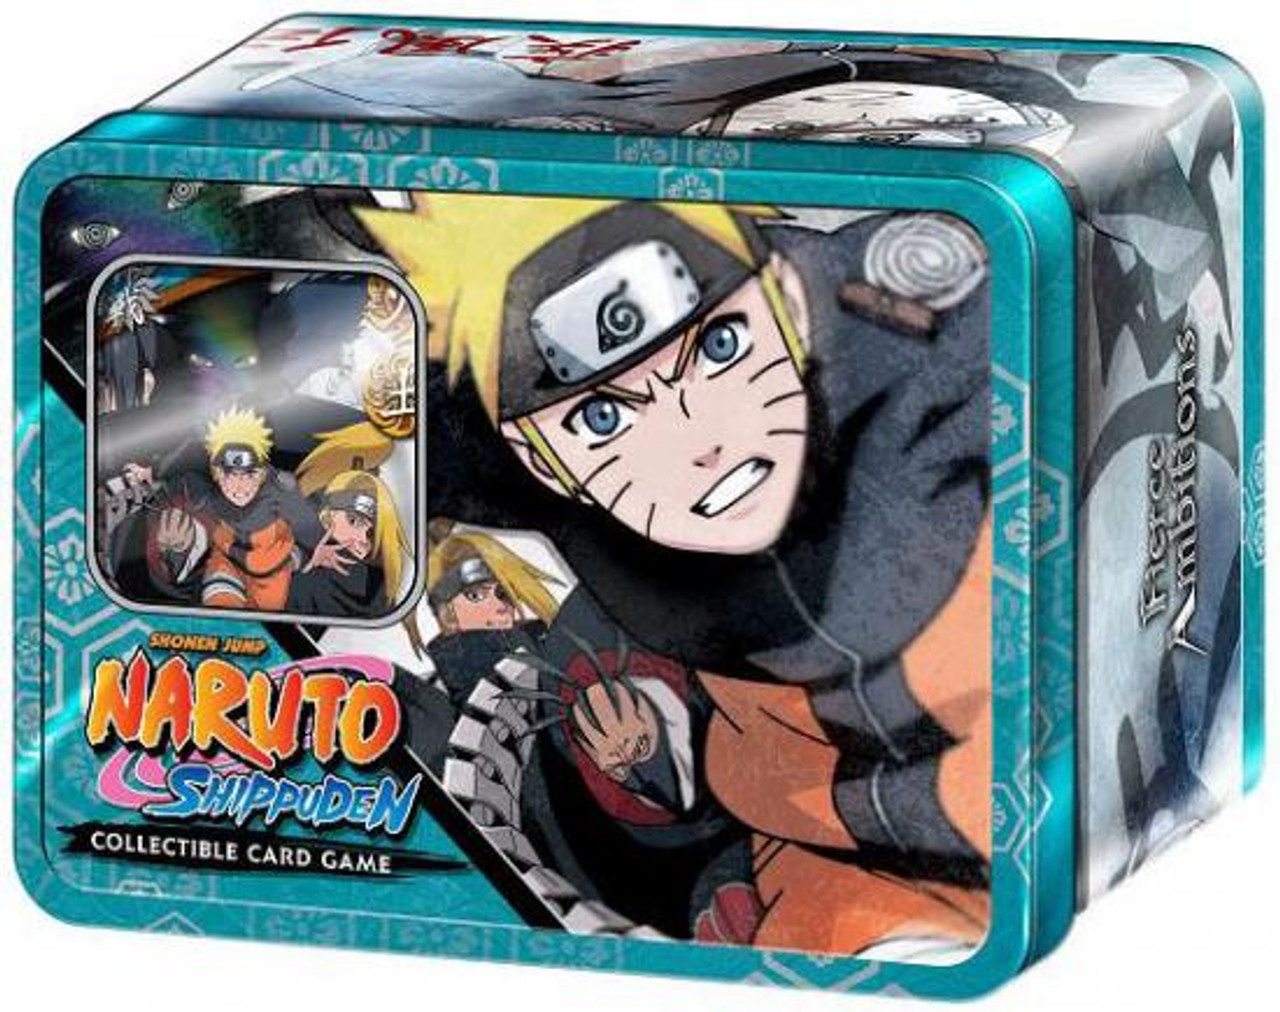 Shippuden Card Game Fierce Ambitions Naruto Vs. Akatsuki Collector Tin